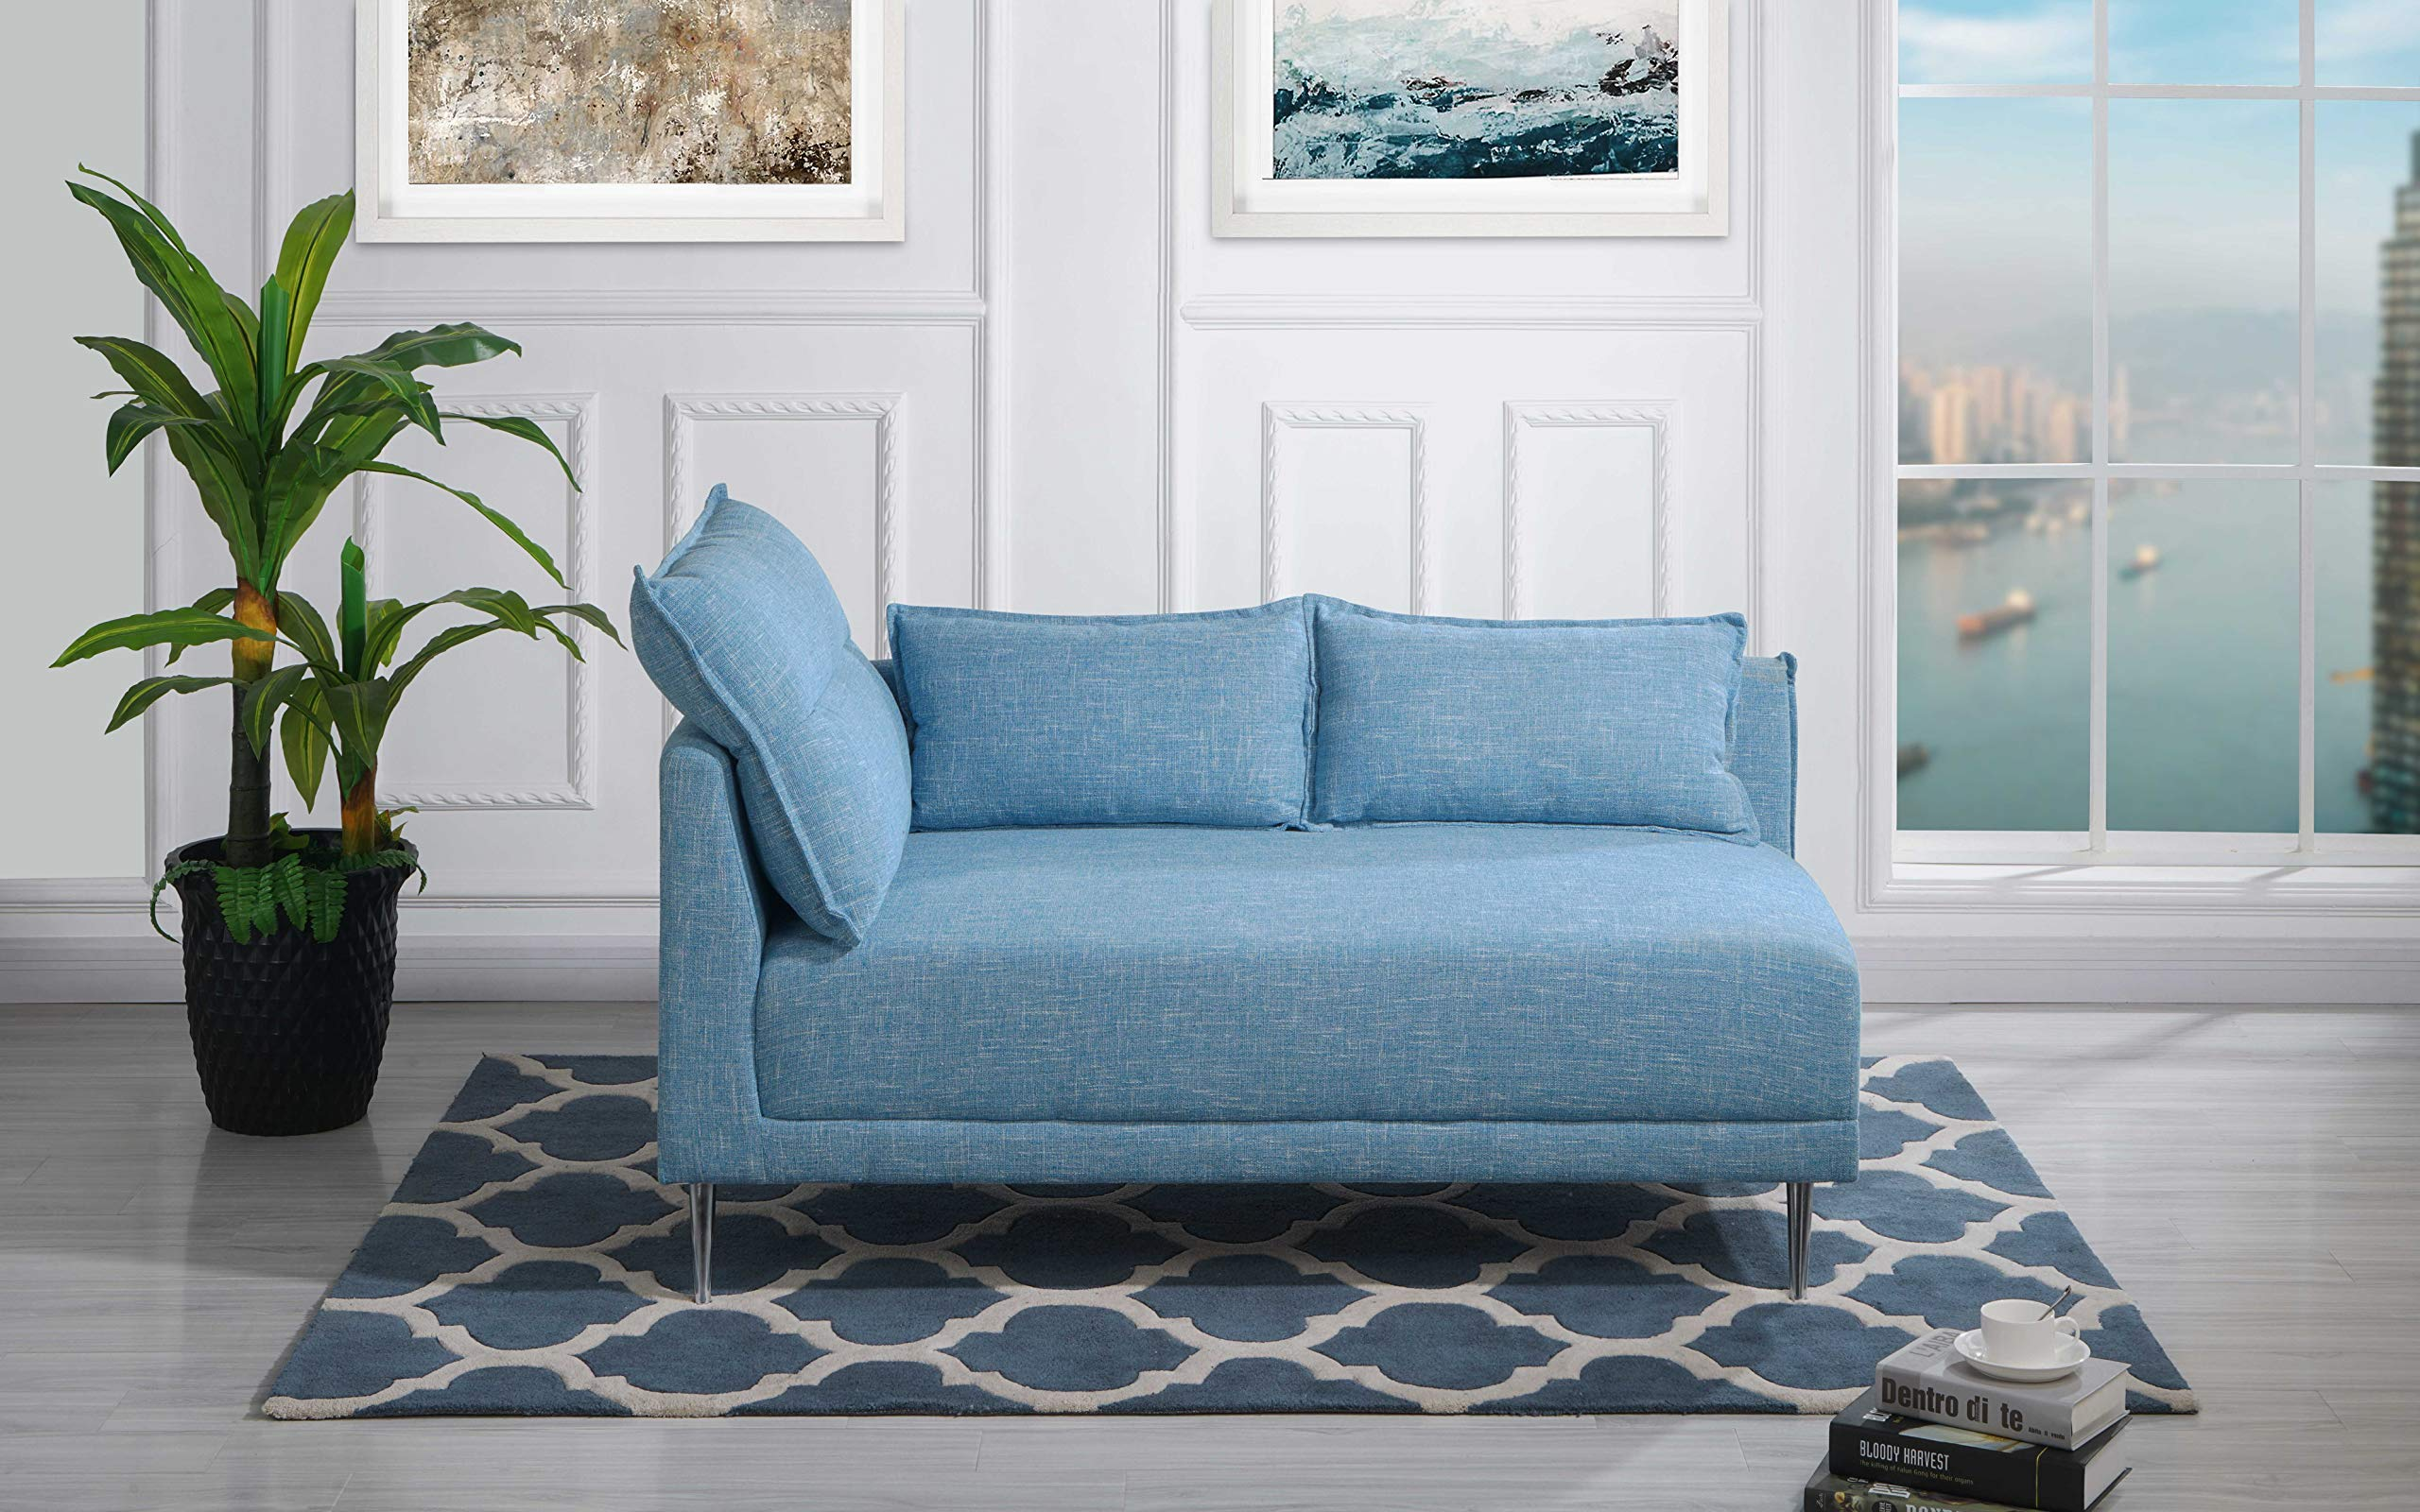 Upholstered 55.9'' inch Modern Living Room Linen Chaise Lounge (Sky Blue) by Casa Andrea